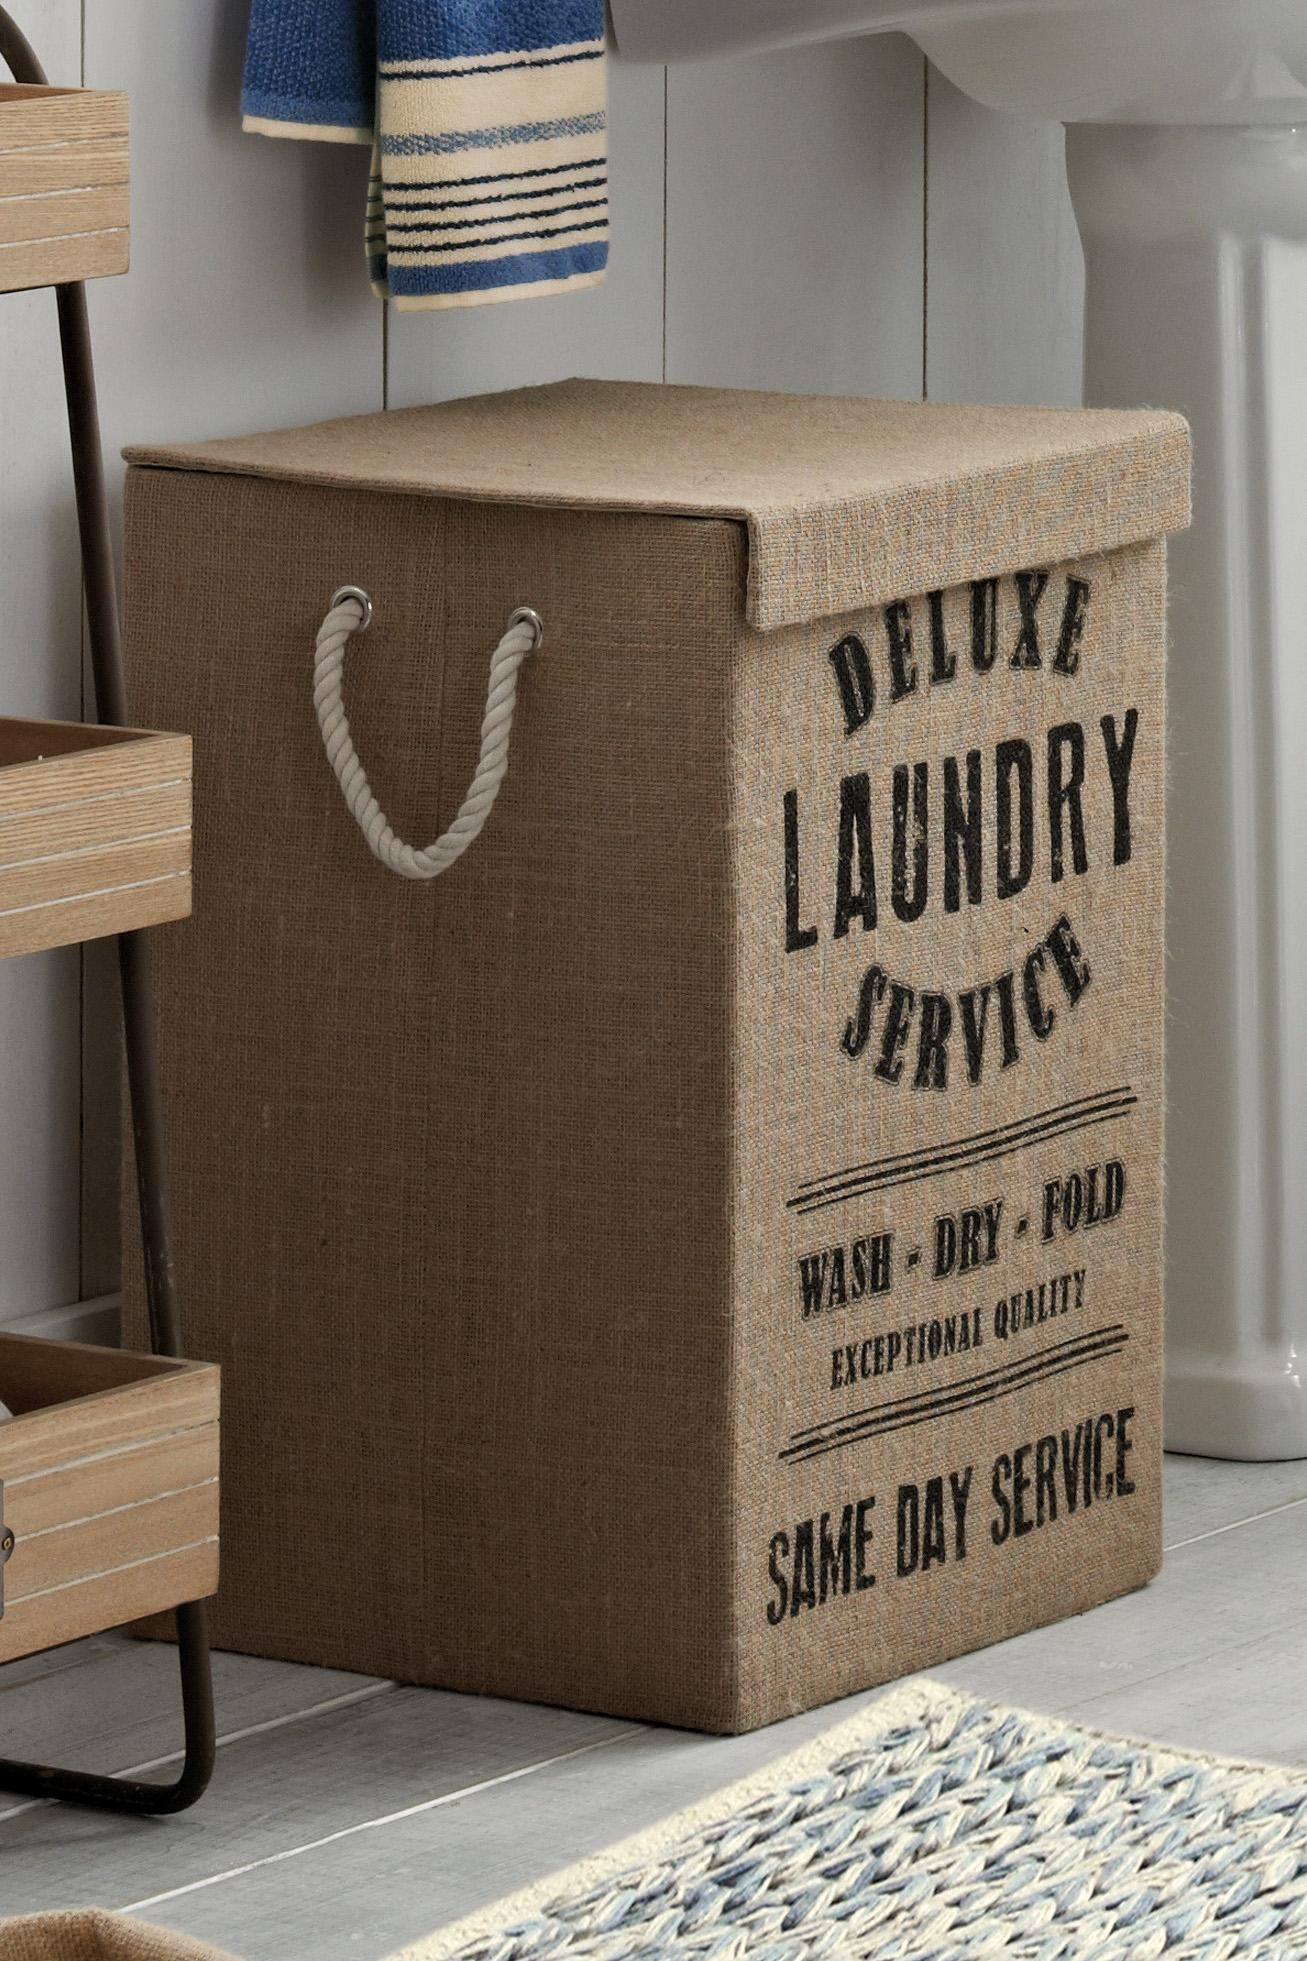 Cute Laundry Hamper Jute Laundry Hamper Next Cute Laundry Decoración De Unas